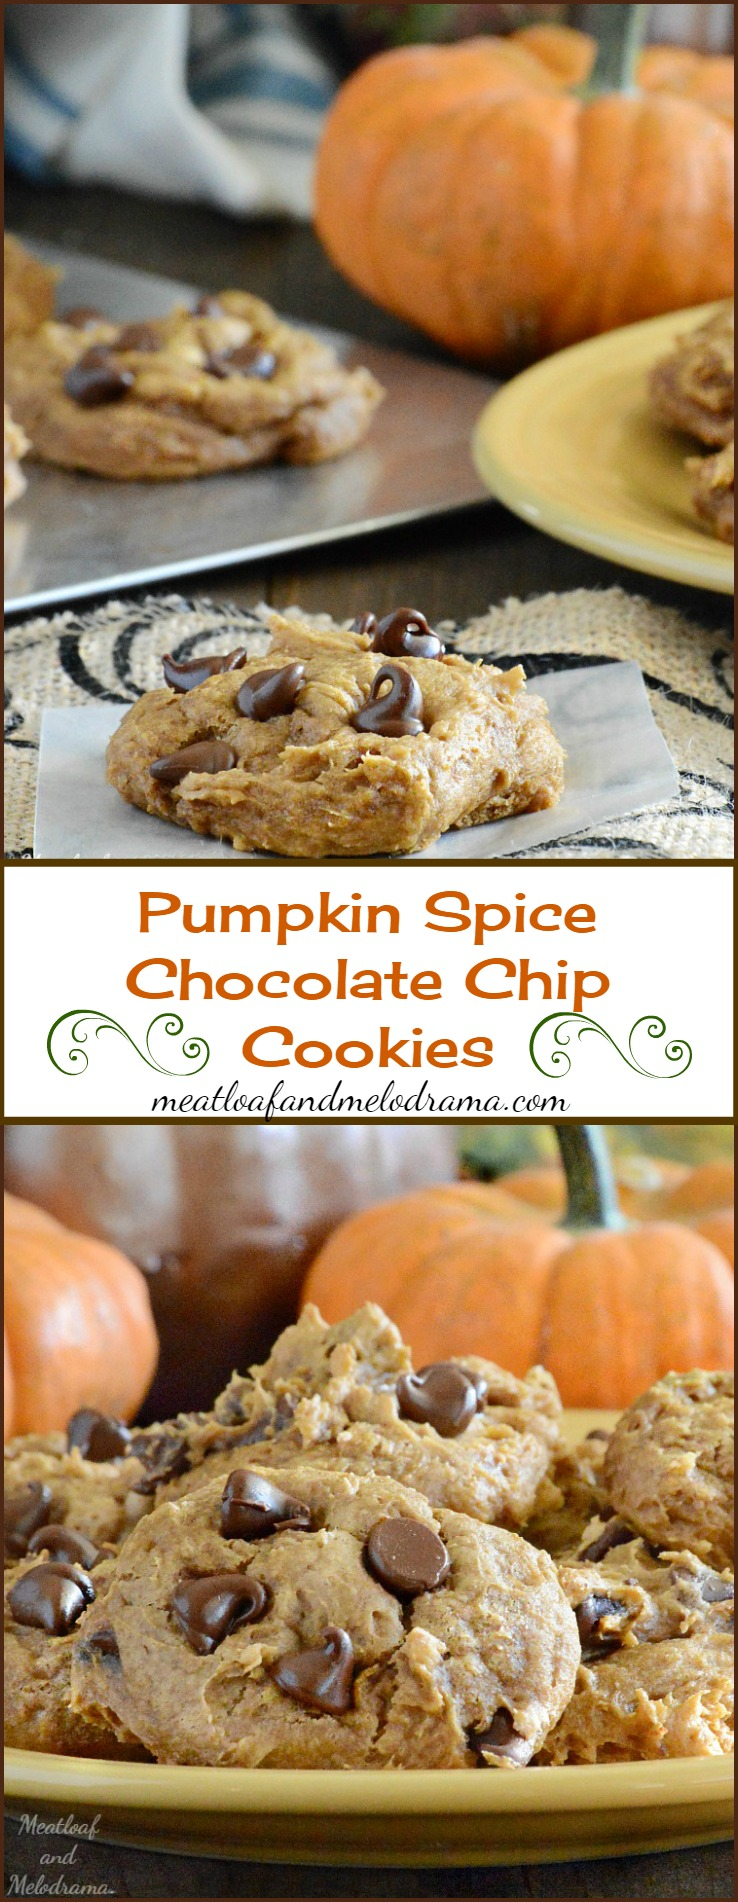 Pumpkin Spice Chocolate Chip Cookies Recipe